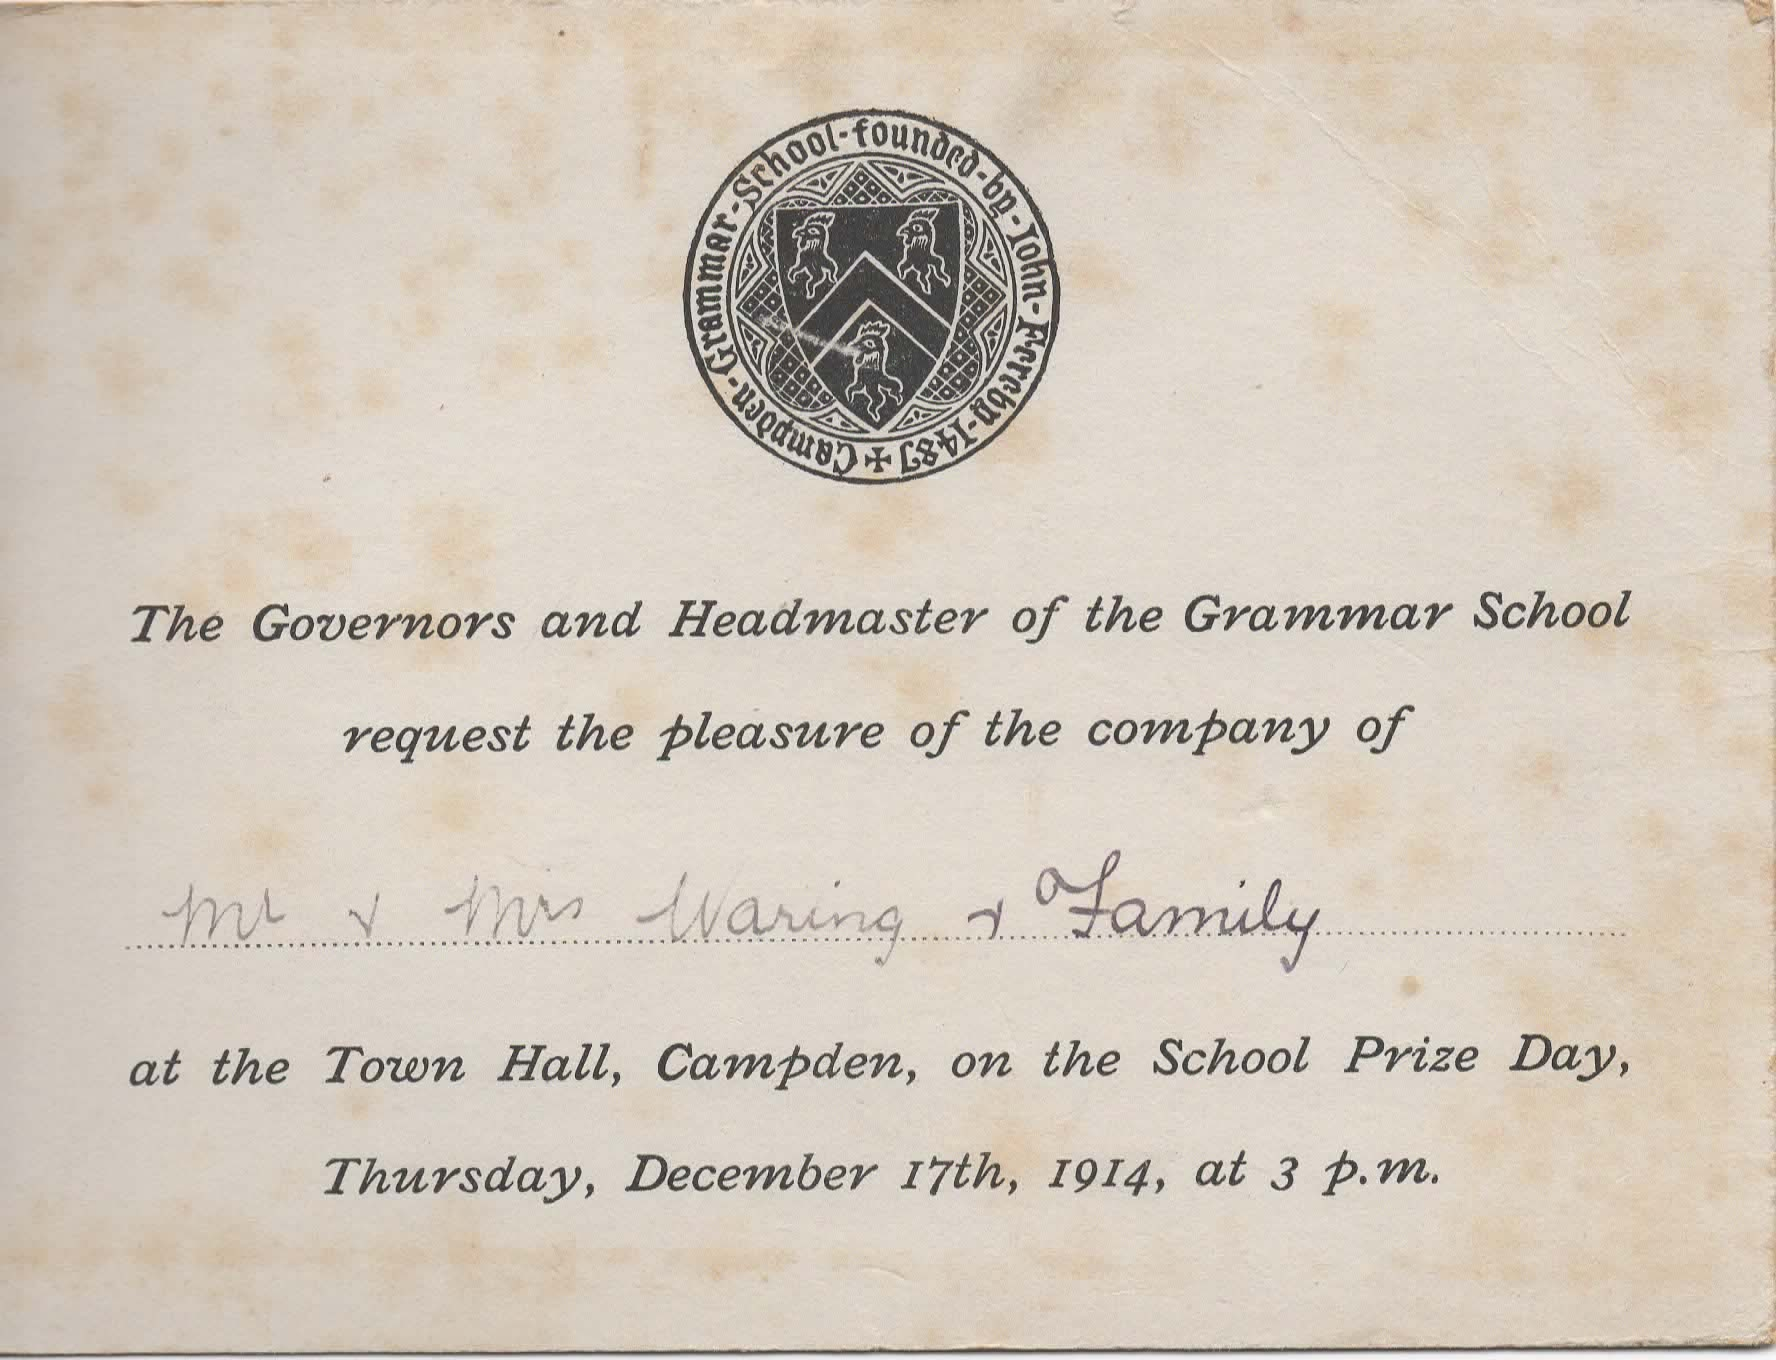 Frances waring archive chipping campden school speech day invitation 1914 stopboris Image collections